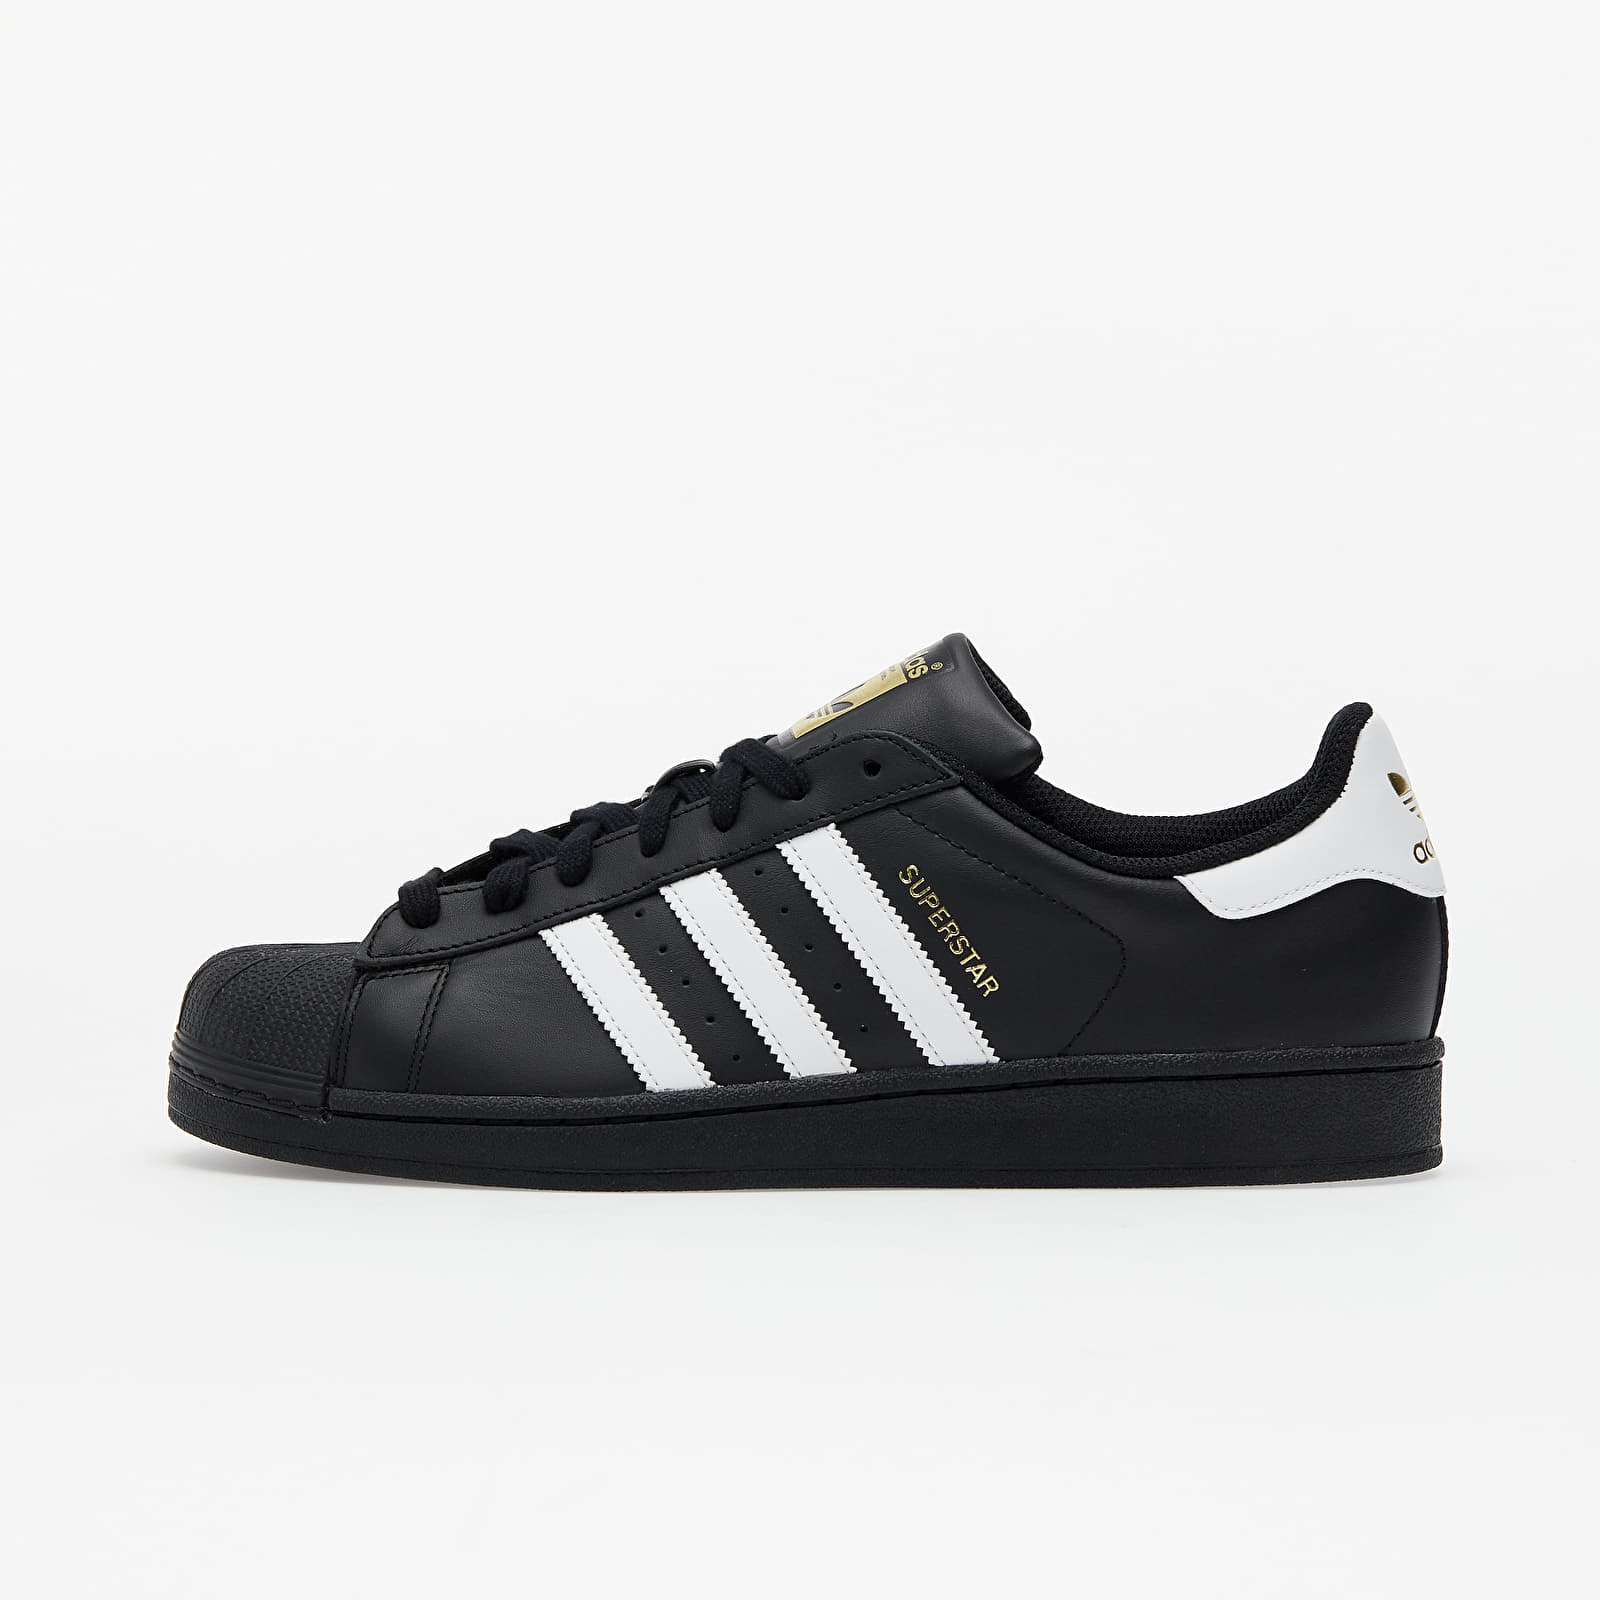 adidas Superstar Foundation Core Black/ Ftw White/ Core Black EUR 46 2/3